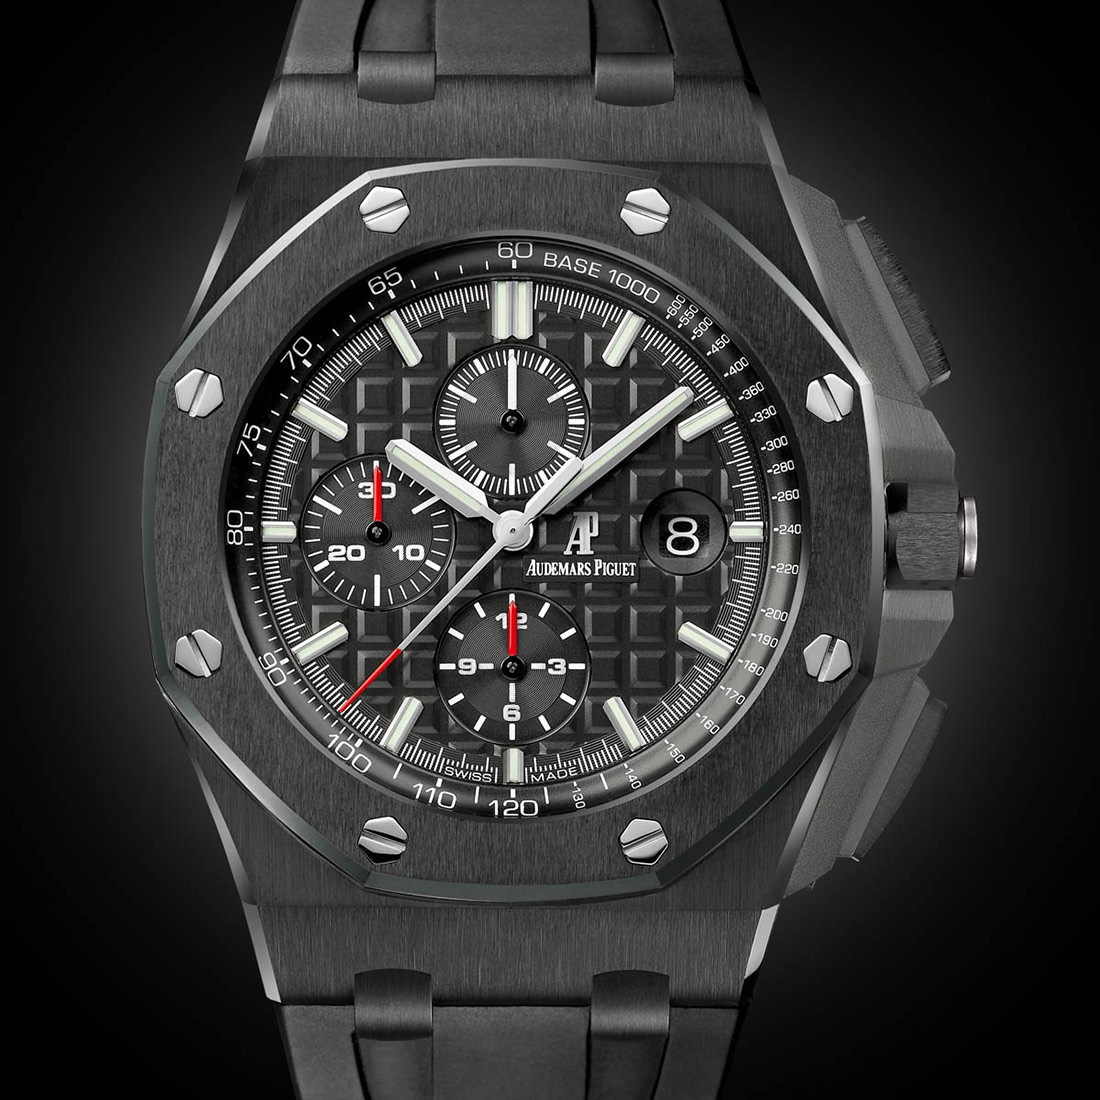 royal-Oak-Offshore-chronograph-audemars-piguet